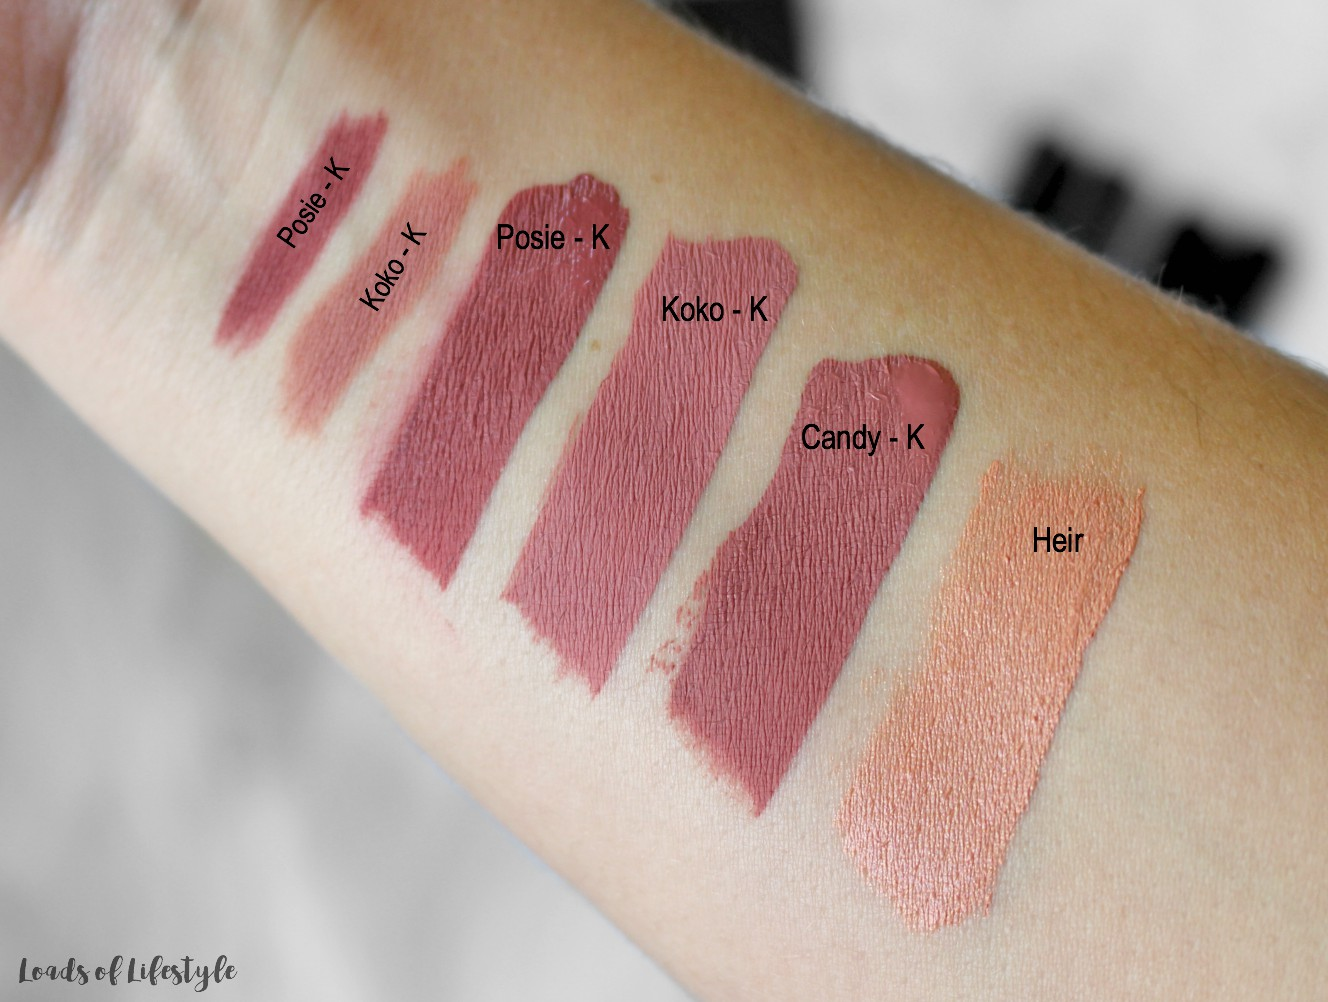 Fabuleux Quick Swatch: Kylie Cosmetics - Loads of Lifestyle WO98